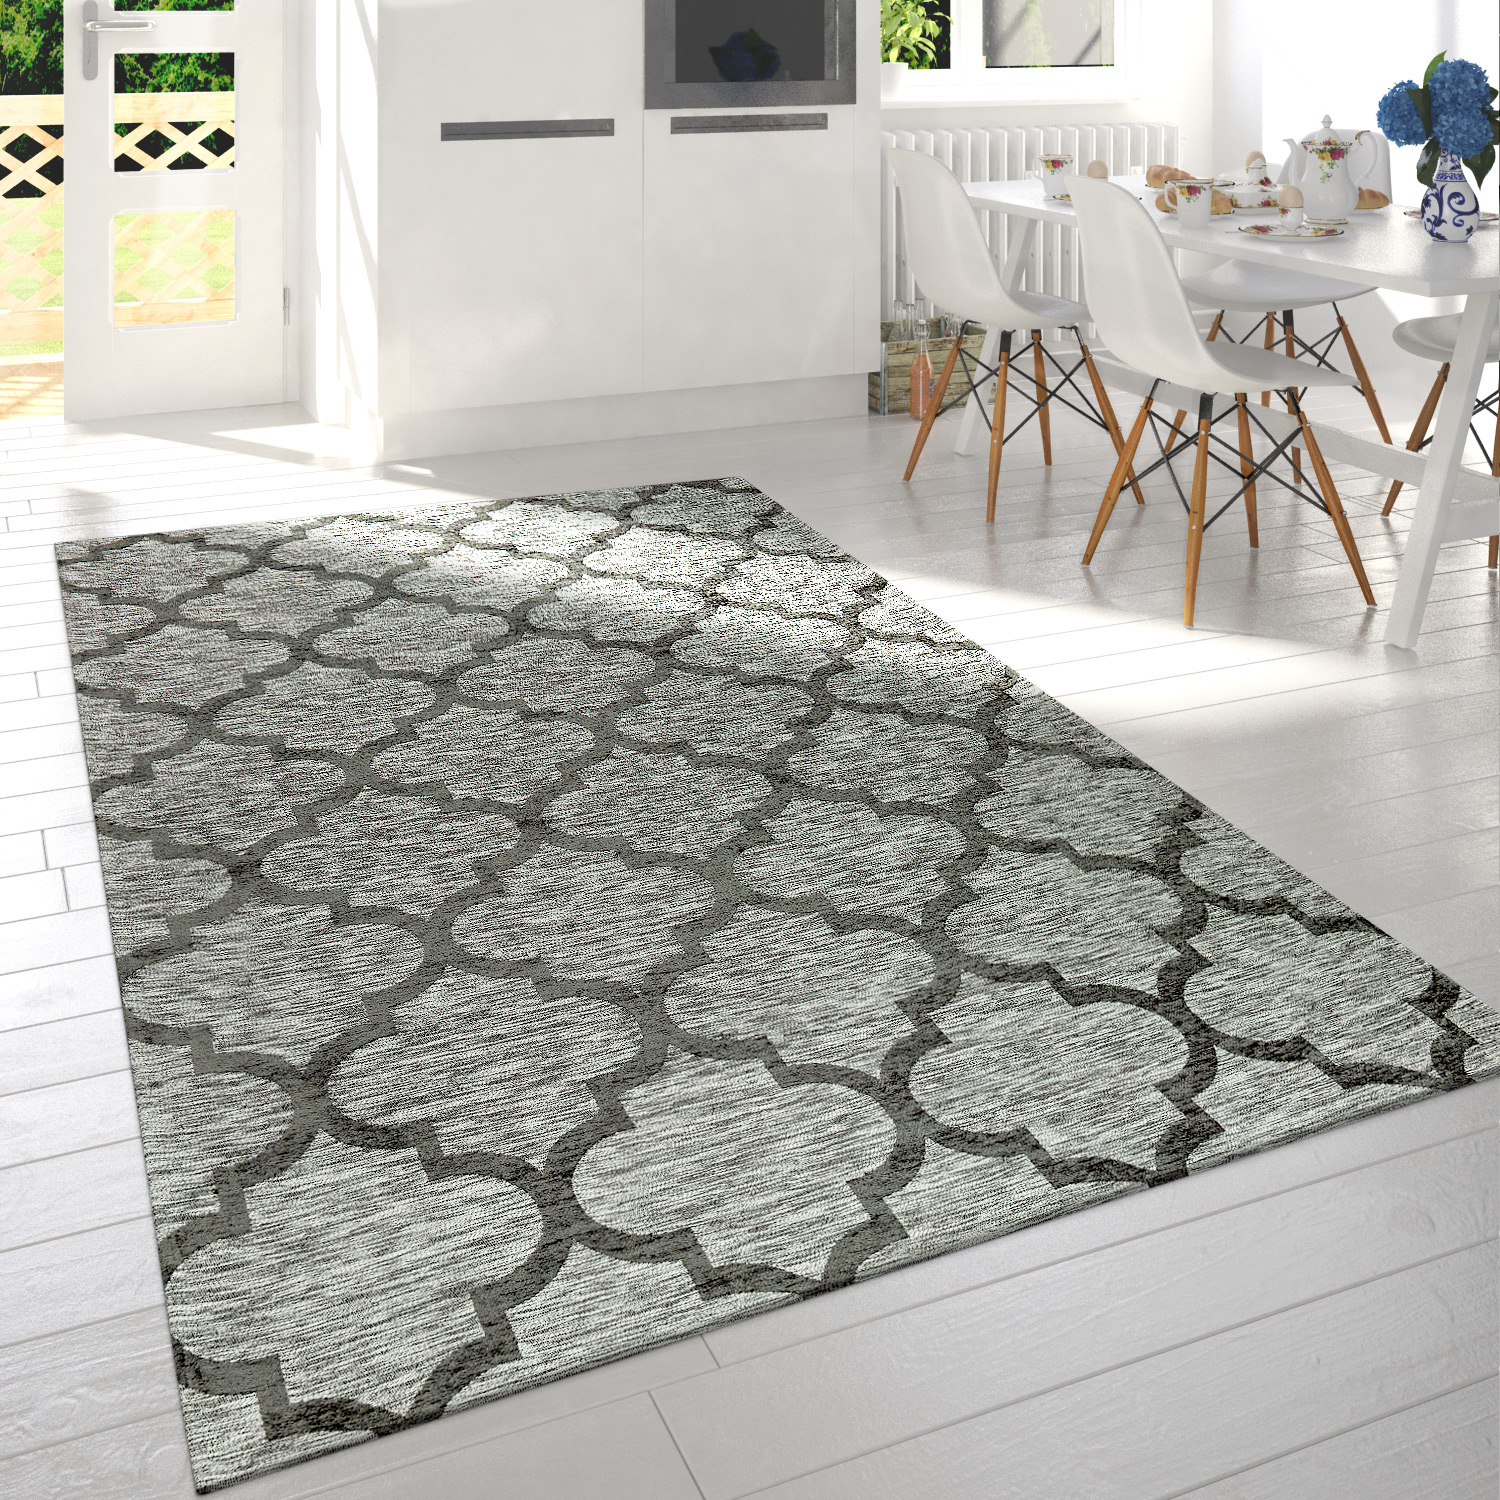 Modern Short Pile Living Room Rug Moroccan Design Mottled In Grey